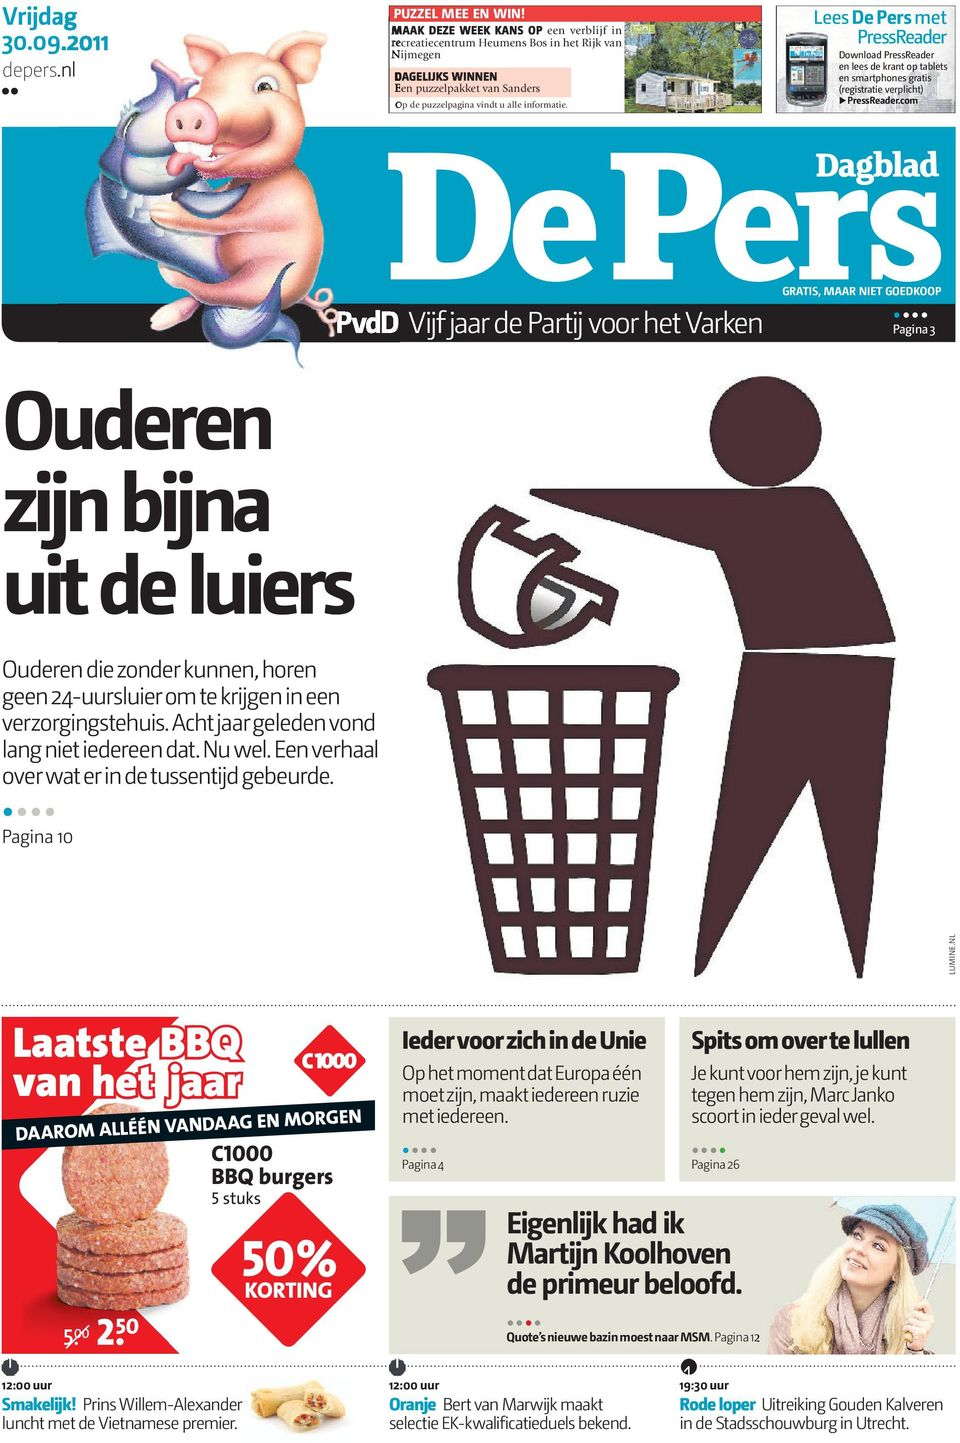 Lees De Pers met PressReader Download PressReader en lees de krant op tablets en smartphones gratis (registratie verplicht) PressReader.